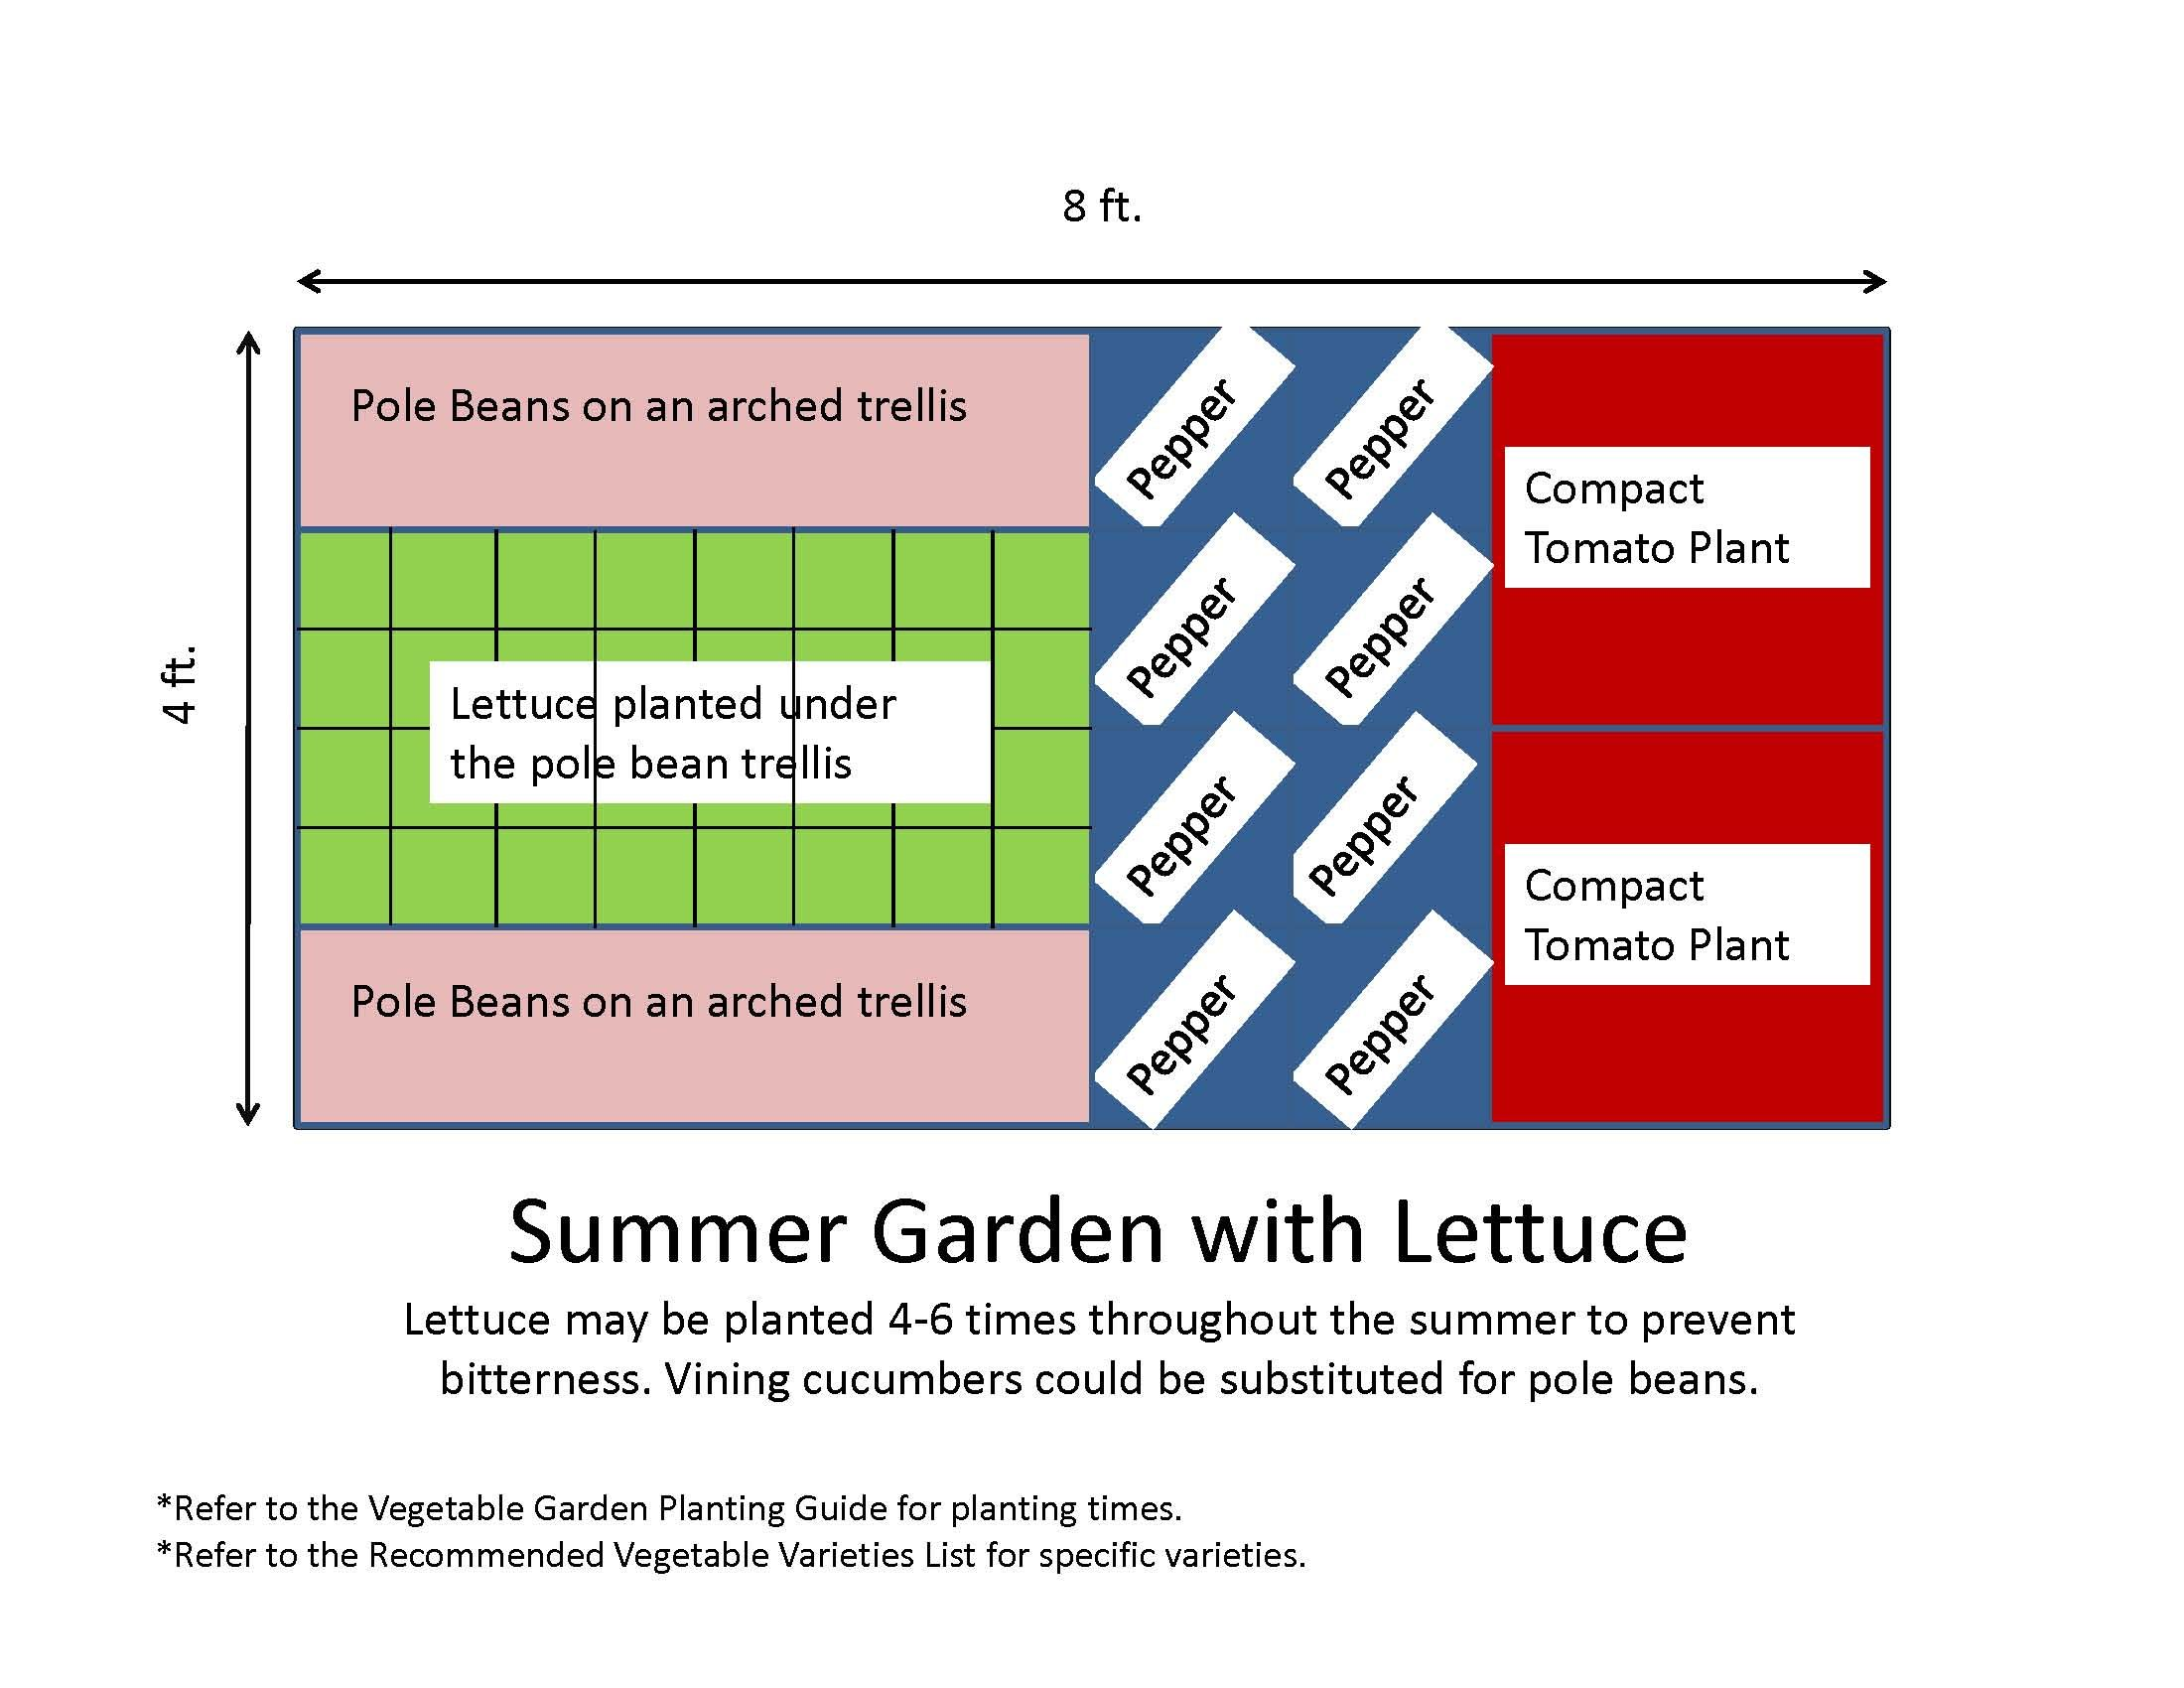 bunch of awesome 4x8 garden plans for raised beds! The